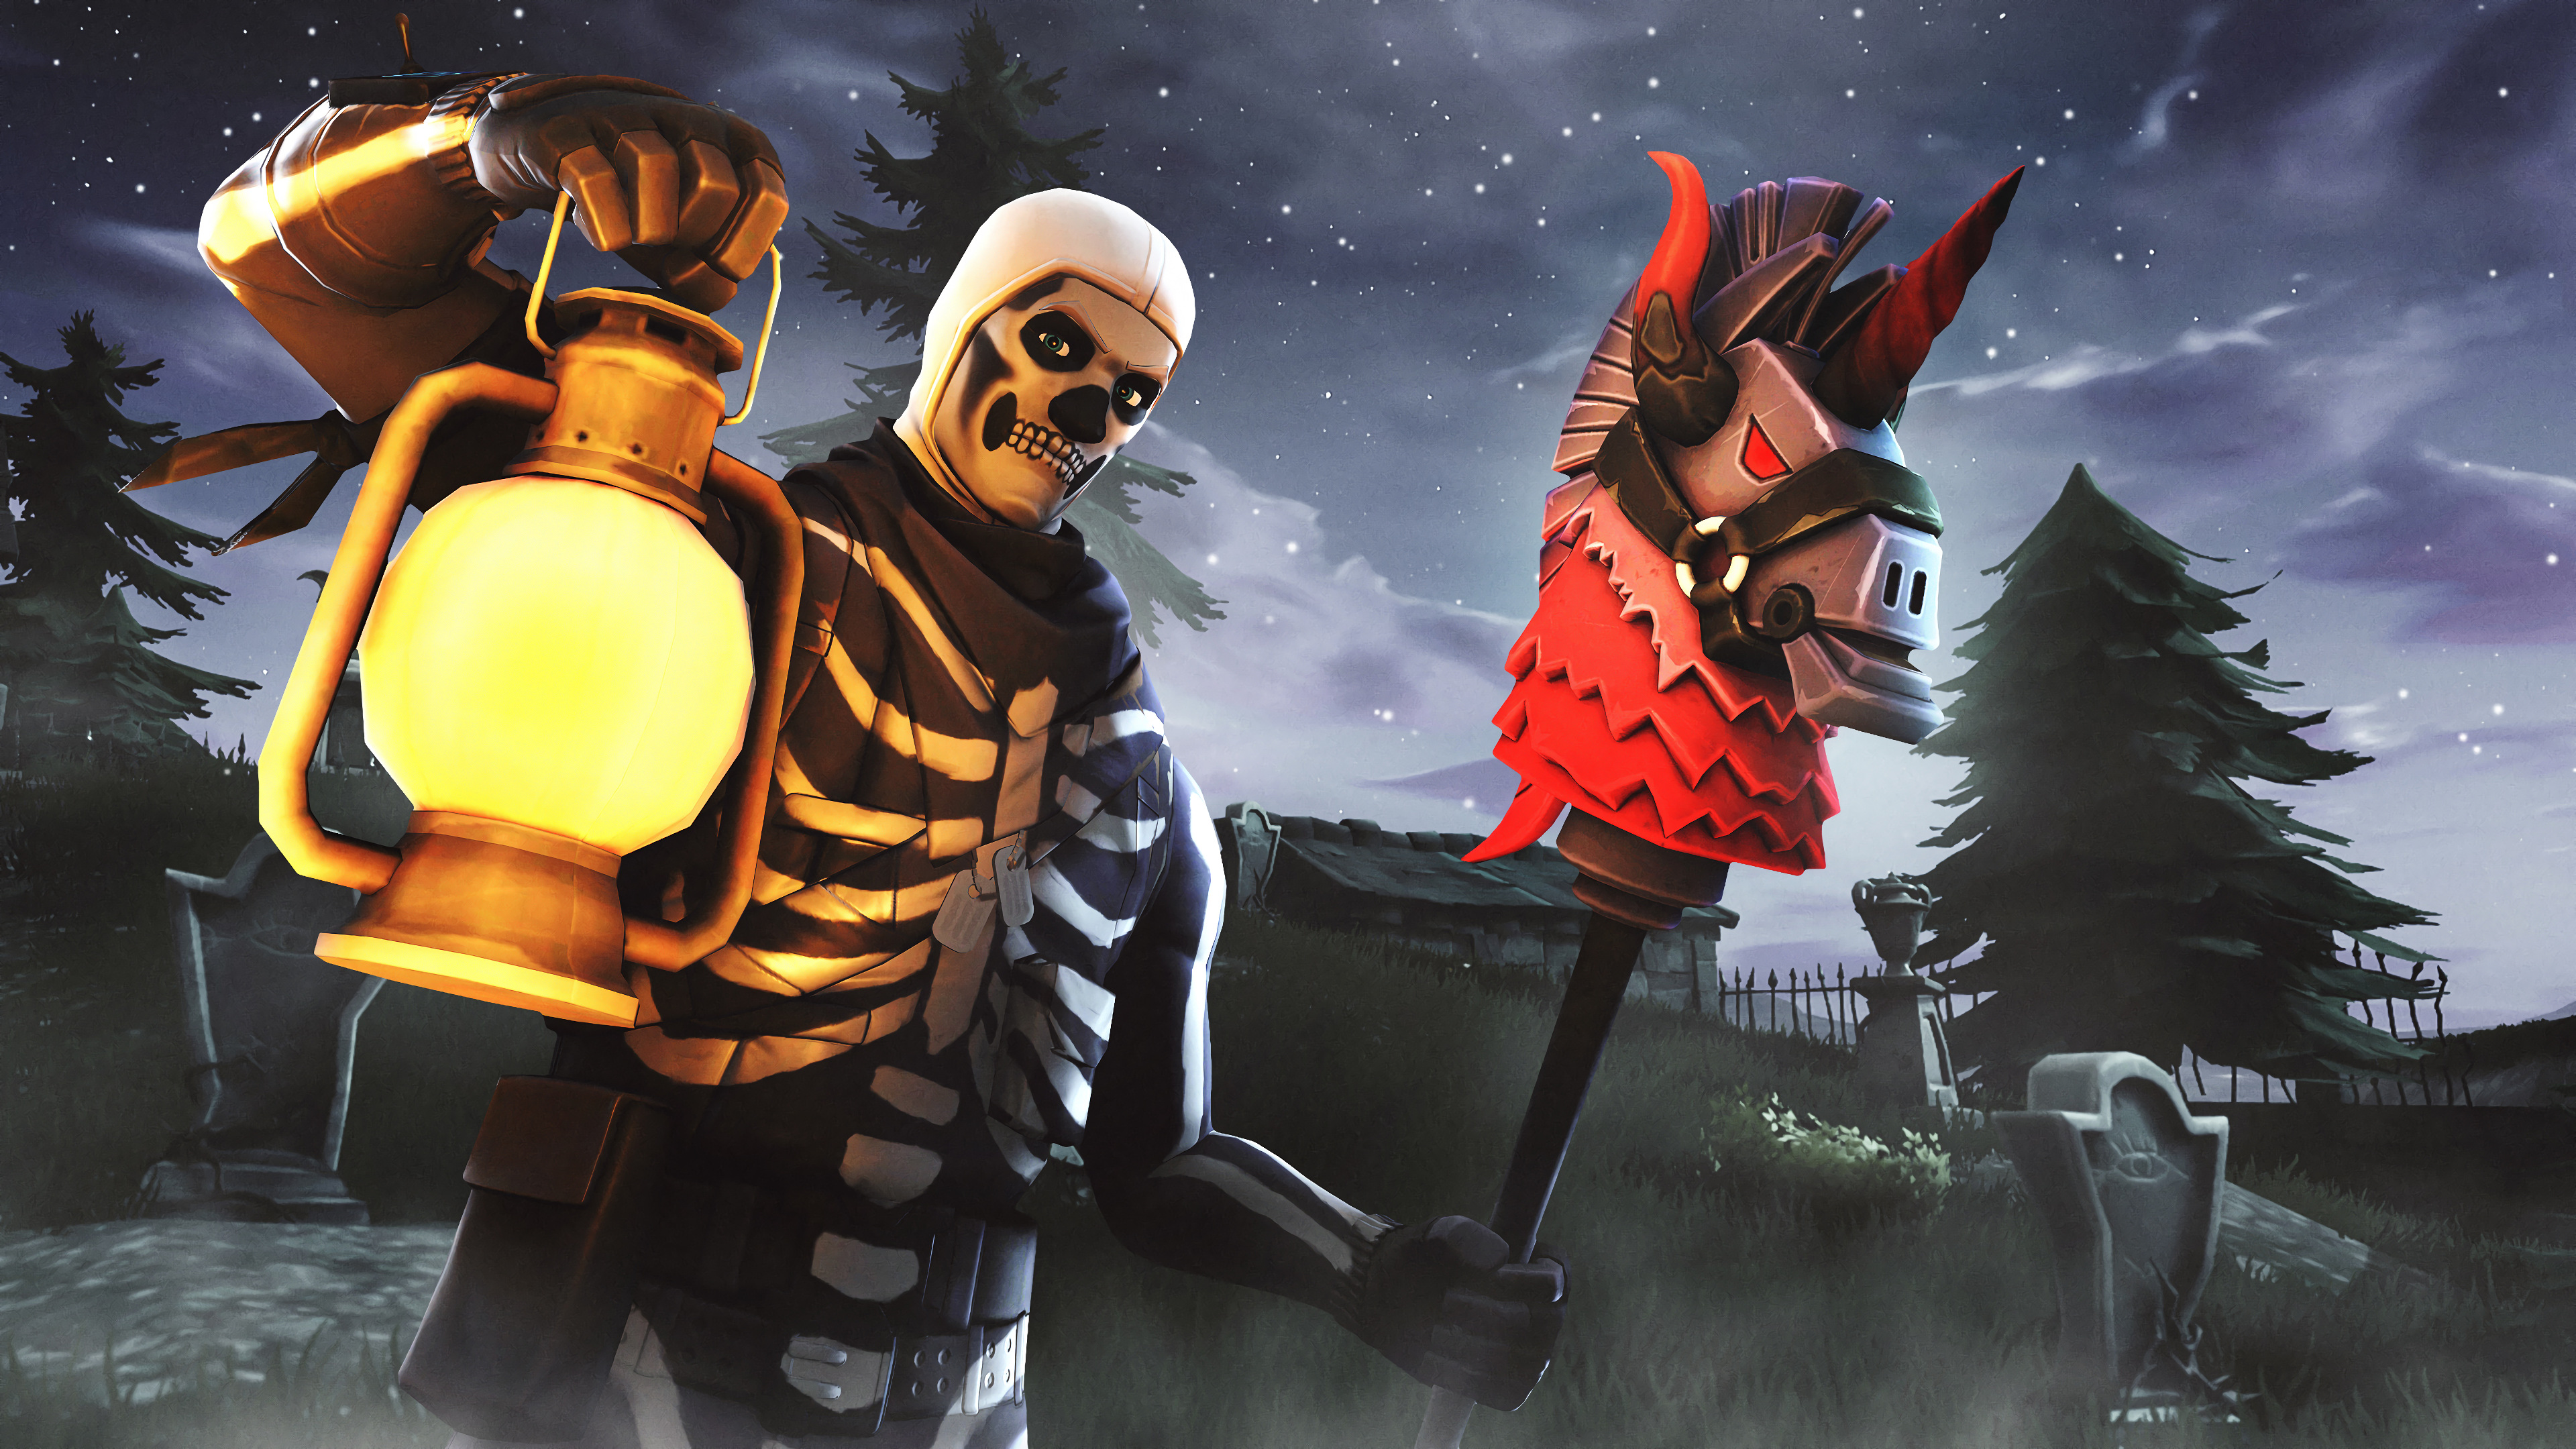 Skull Trooper Fortnite Hd Wallpaper 3840x2160 Gludy